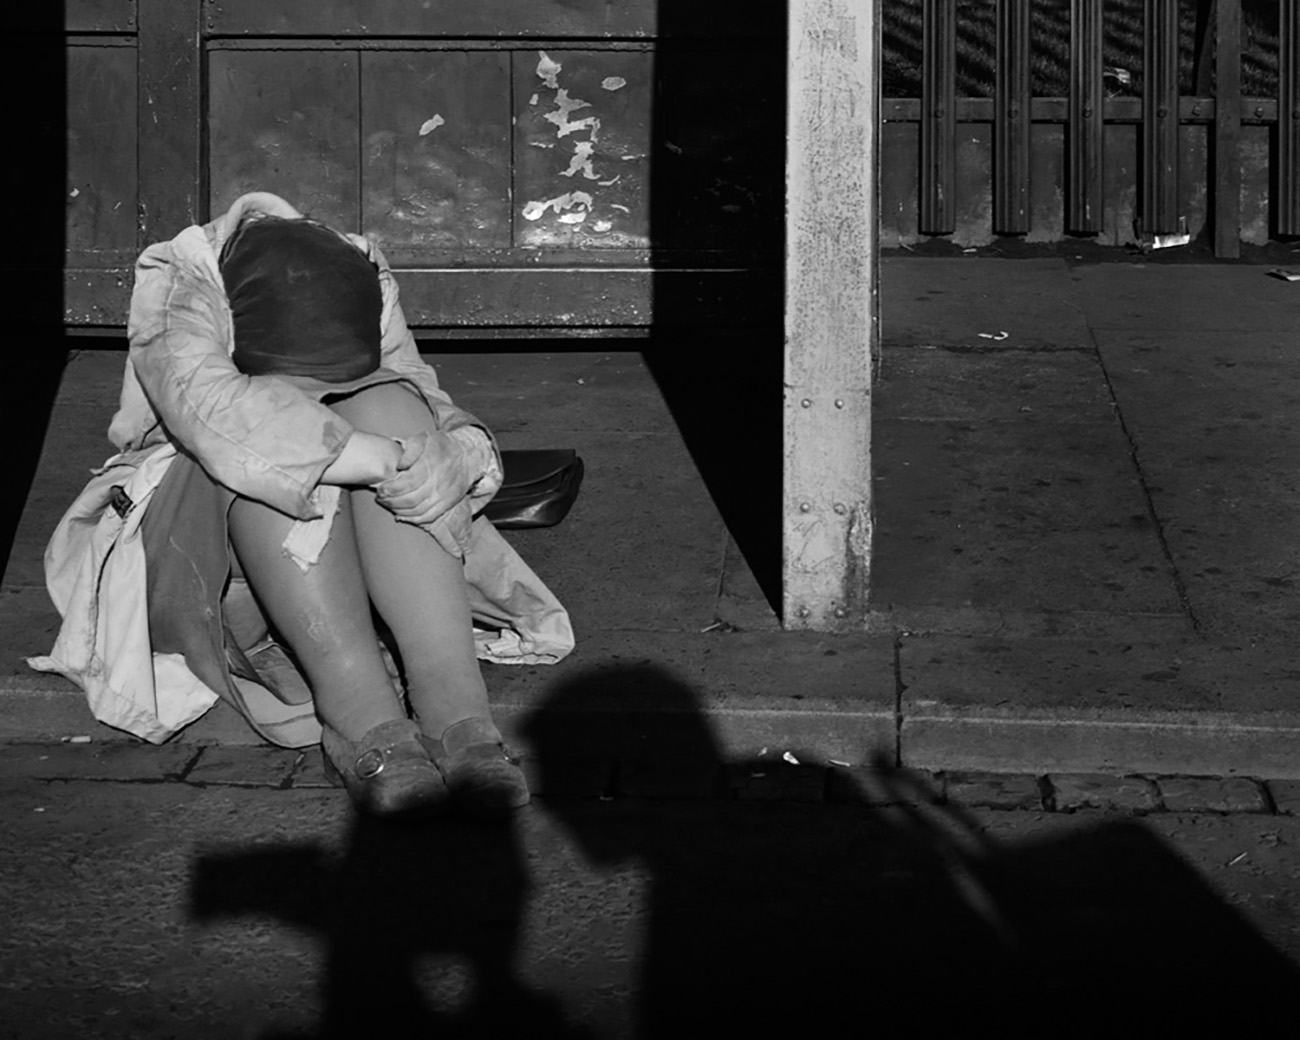 The image depicts a woman sitting on the curb, hugging her knees.